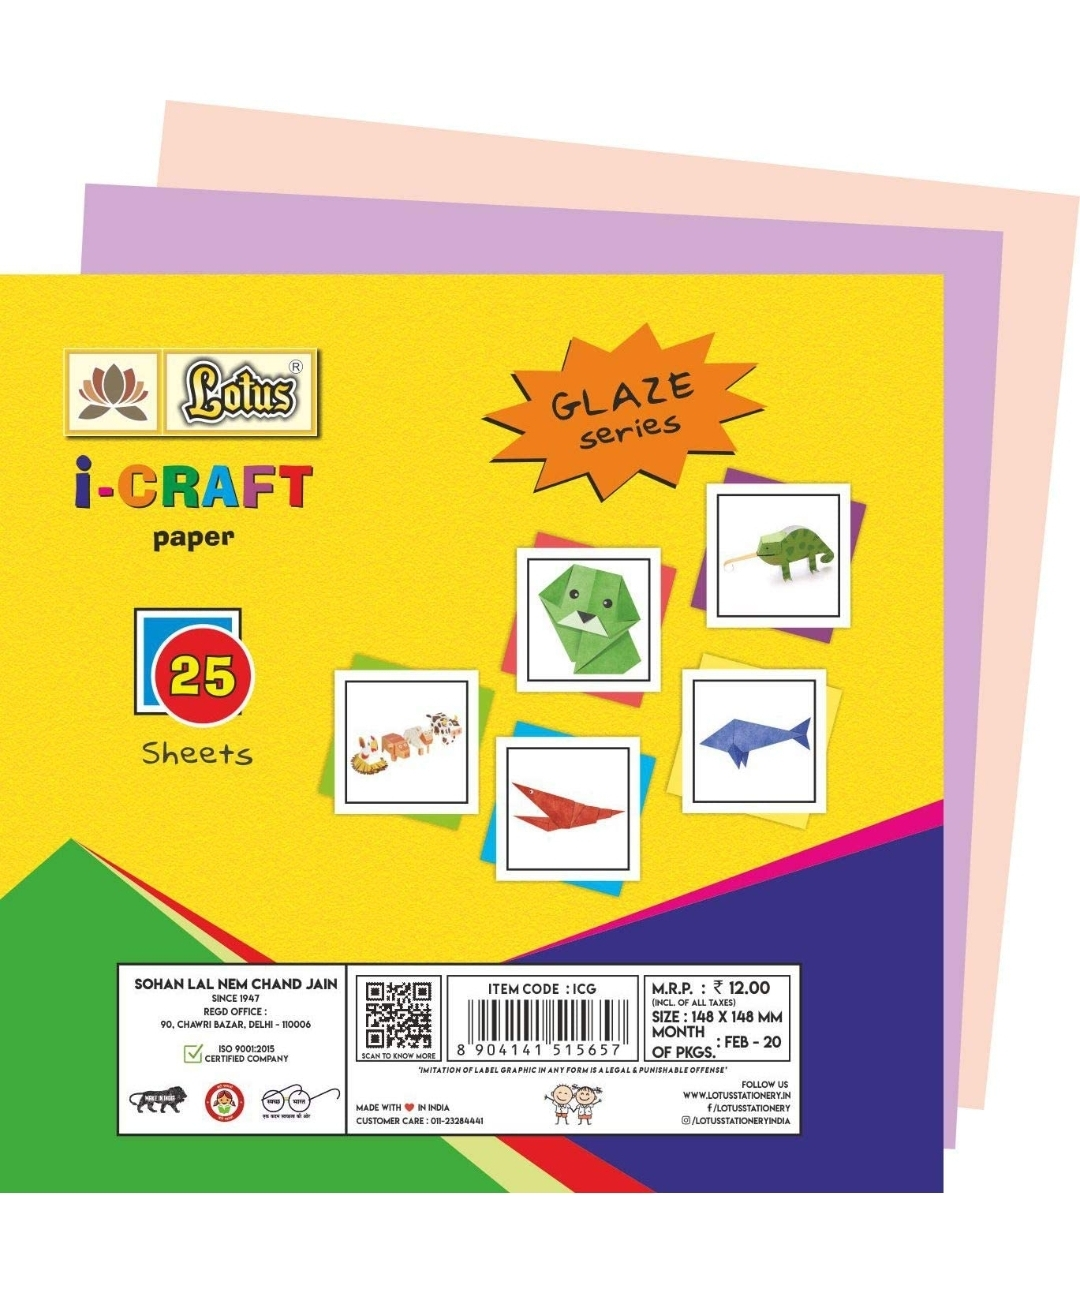 Lotus I - Craft Paper, Glaze Series, Square Paper, Multi Color, 14.8 X 14.8 cm, 25 Packs (1 Pack of 25 Sheets)